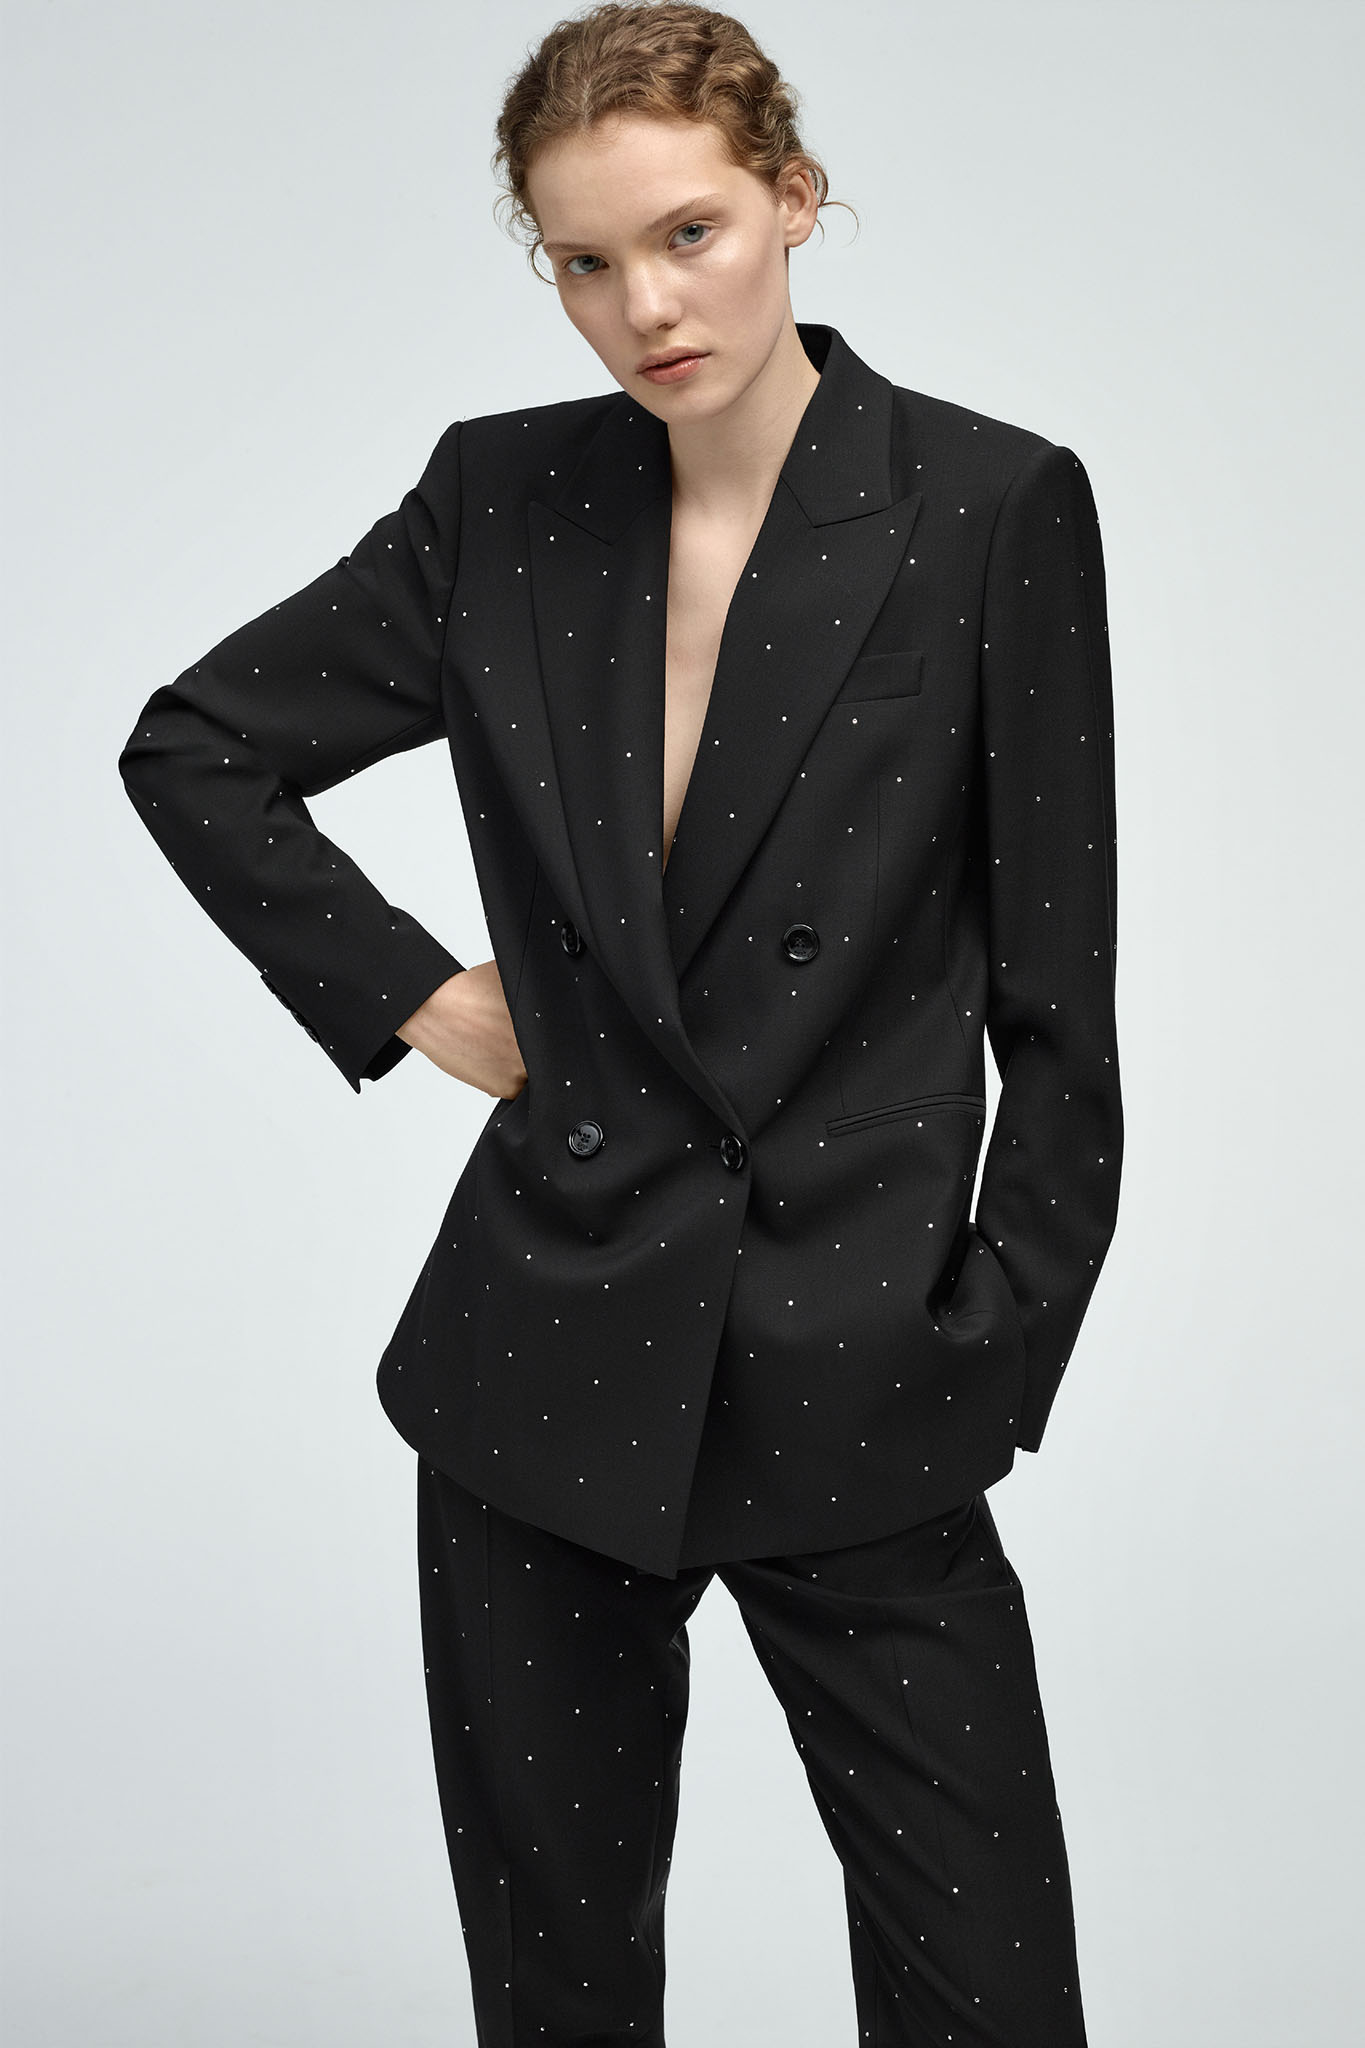 BOSS Womenswear limited-edition crystal-studded pantsuit.